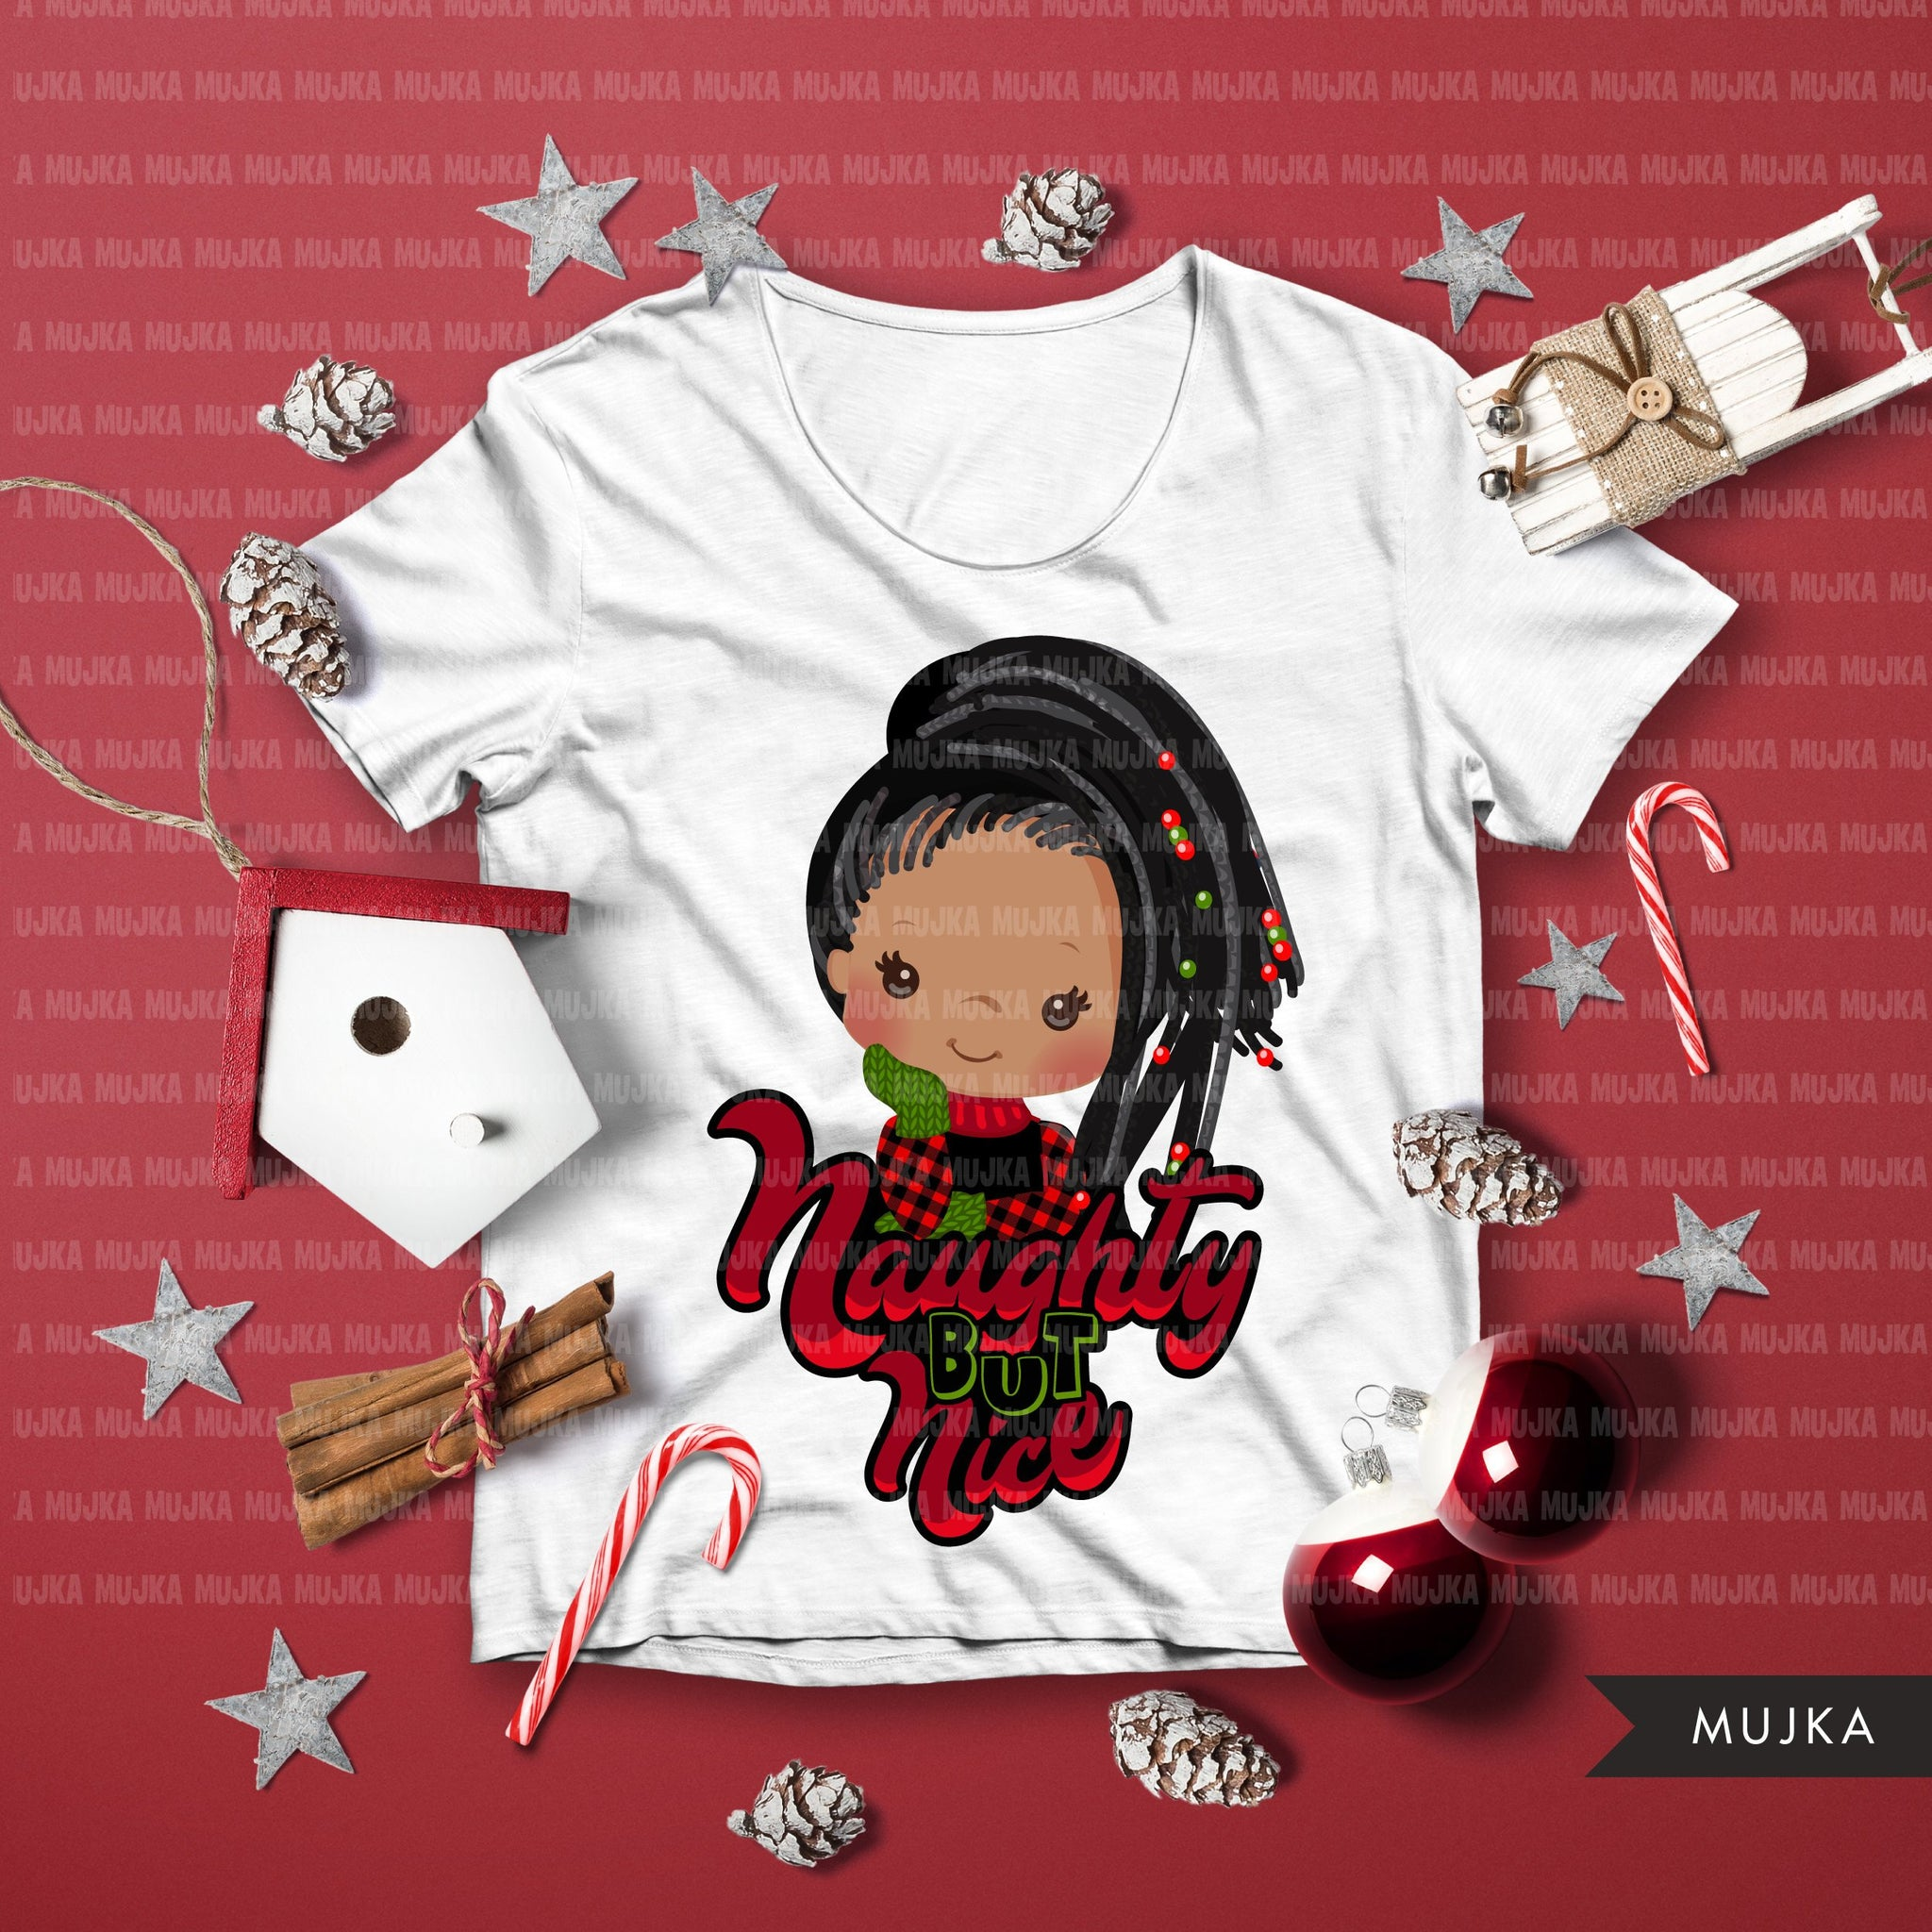 Christmas PNG digital, Afro Naughty but Nice HTV sublimation image transfer clipart, t-shirt graphics, Afro Plaid little girl characters